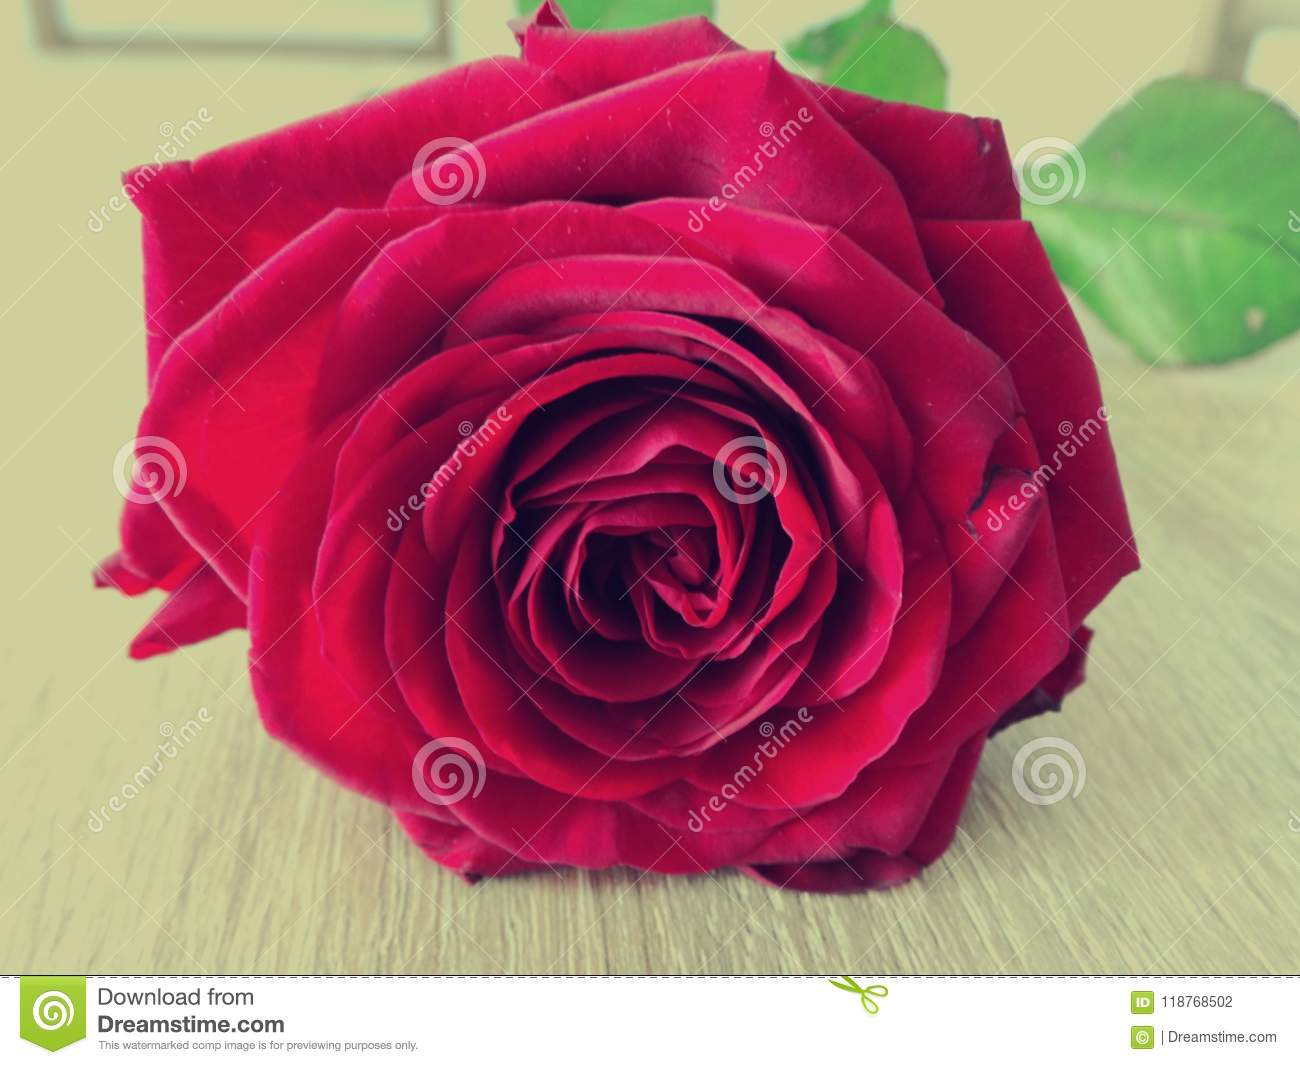 3 802 Sad Red Rose Photos Free Royalty Free Stock Photos From Dreamstime